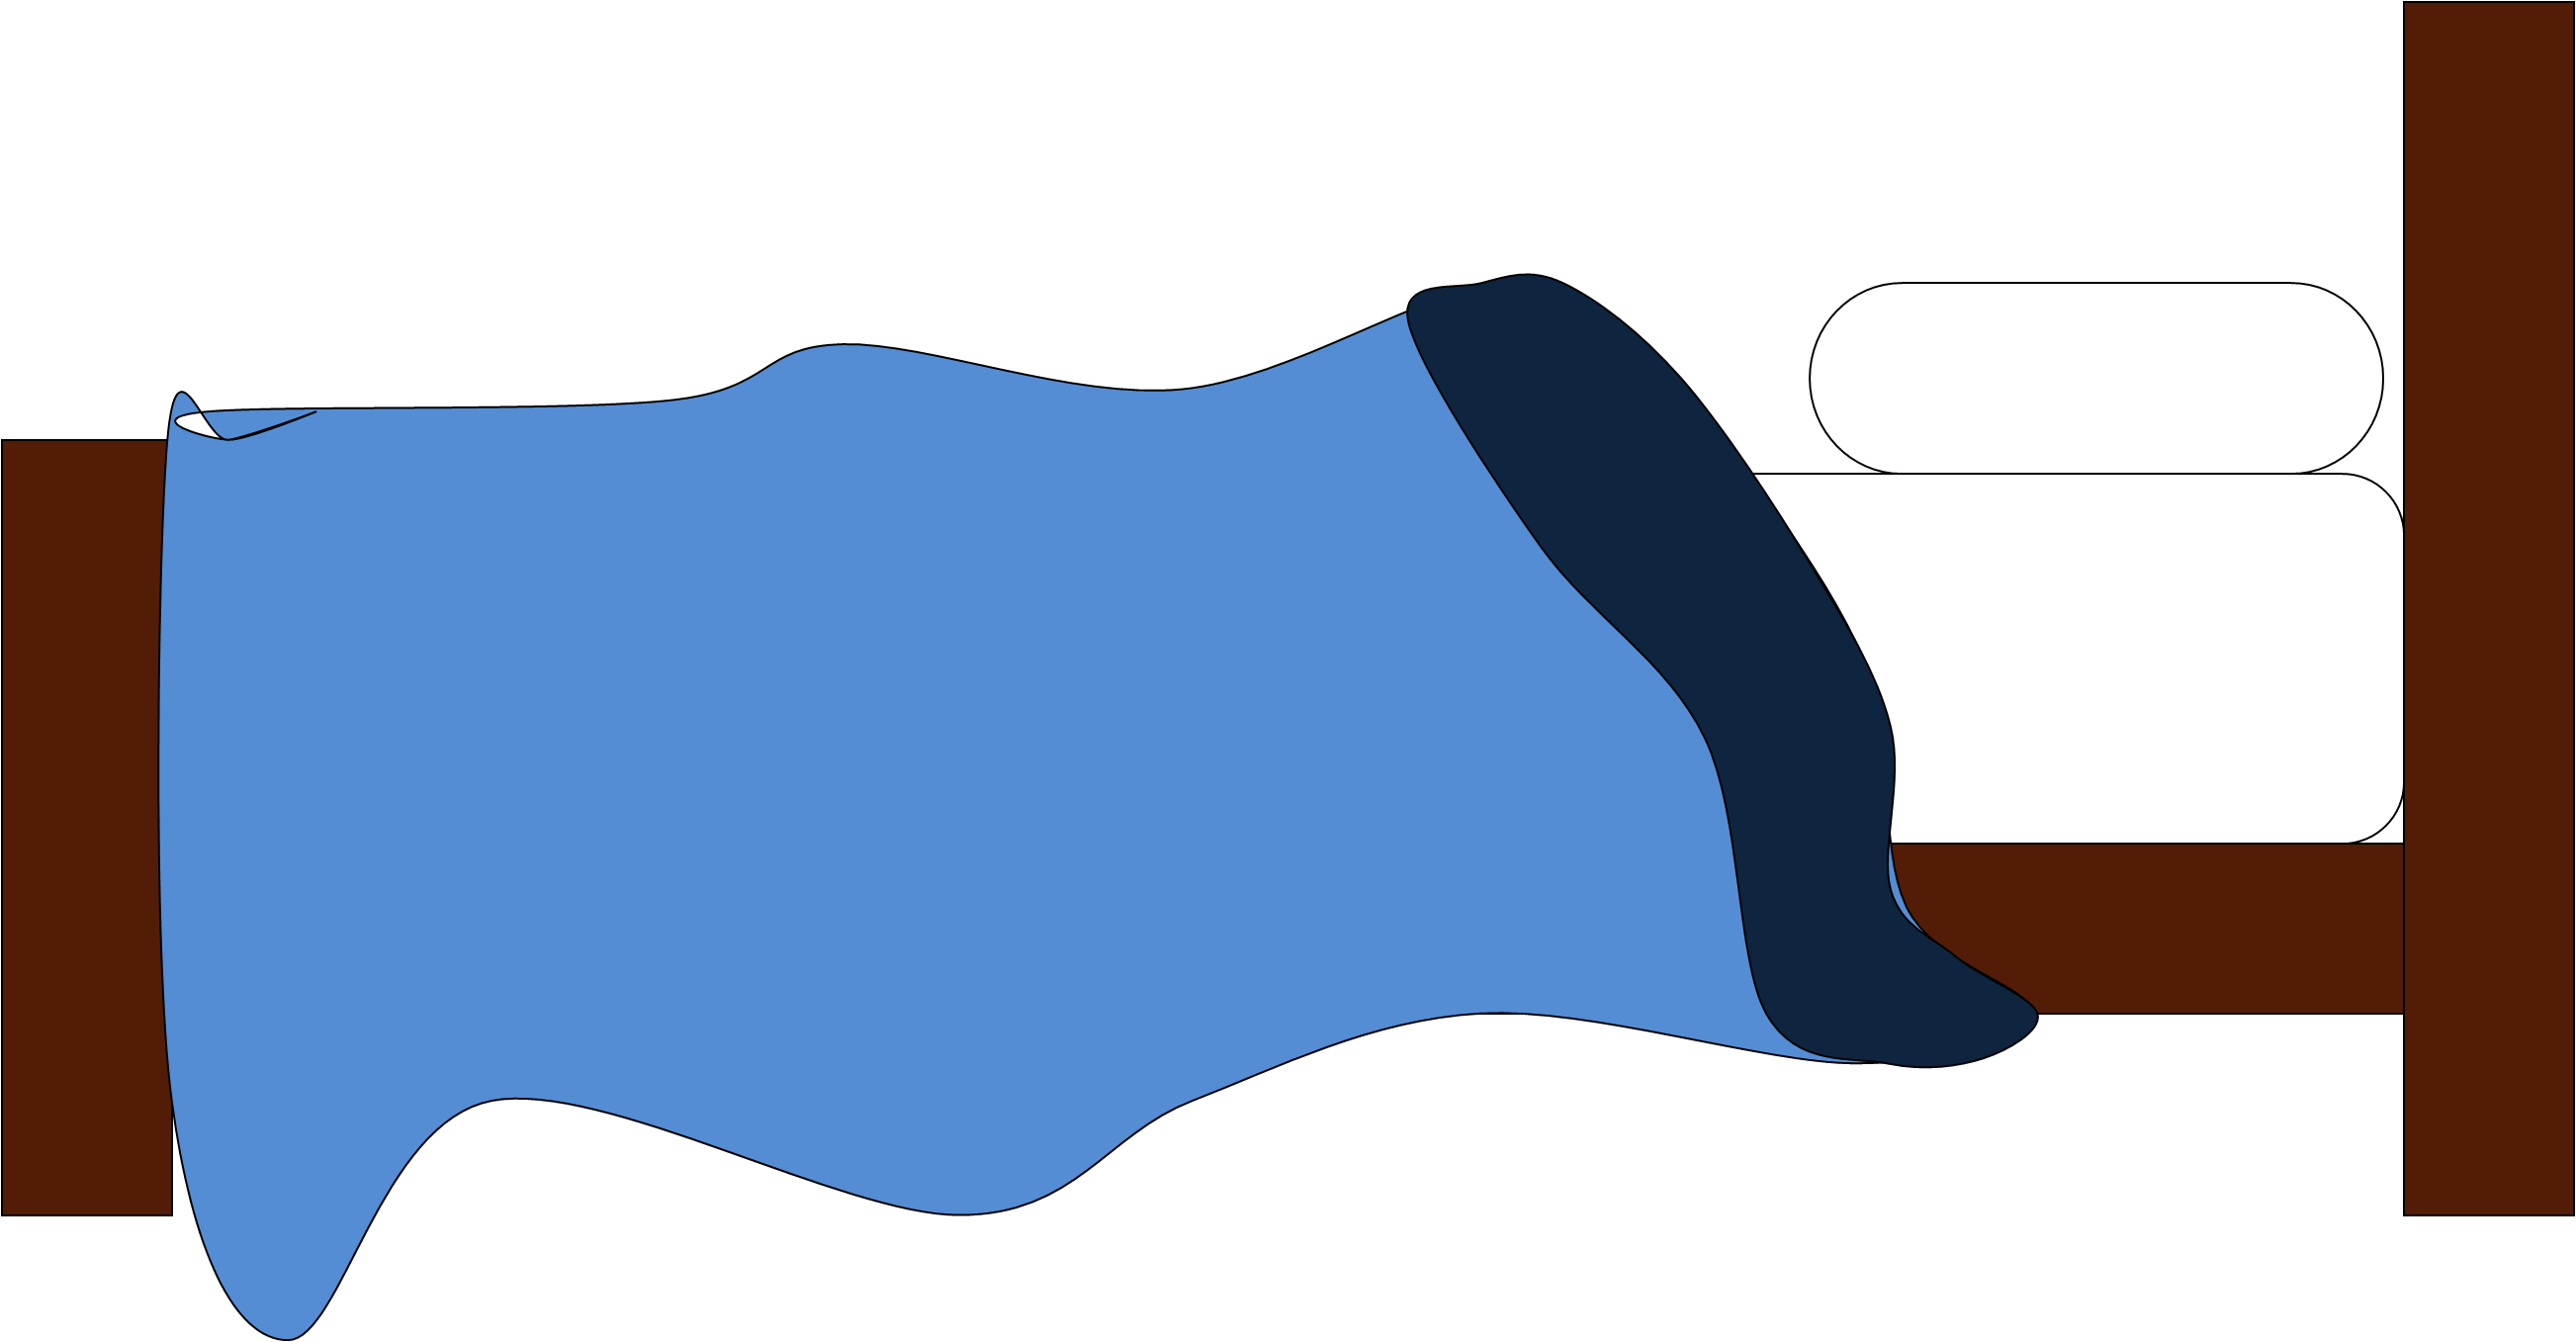 Cartoon bed png. Free images at clker